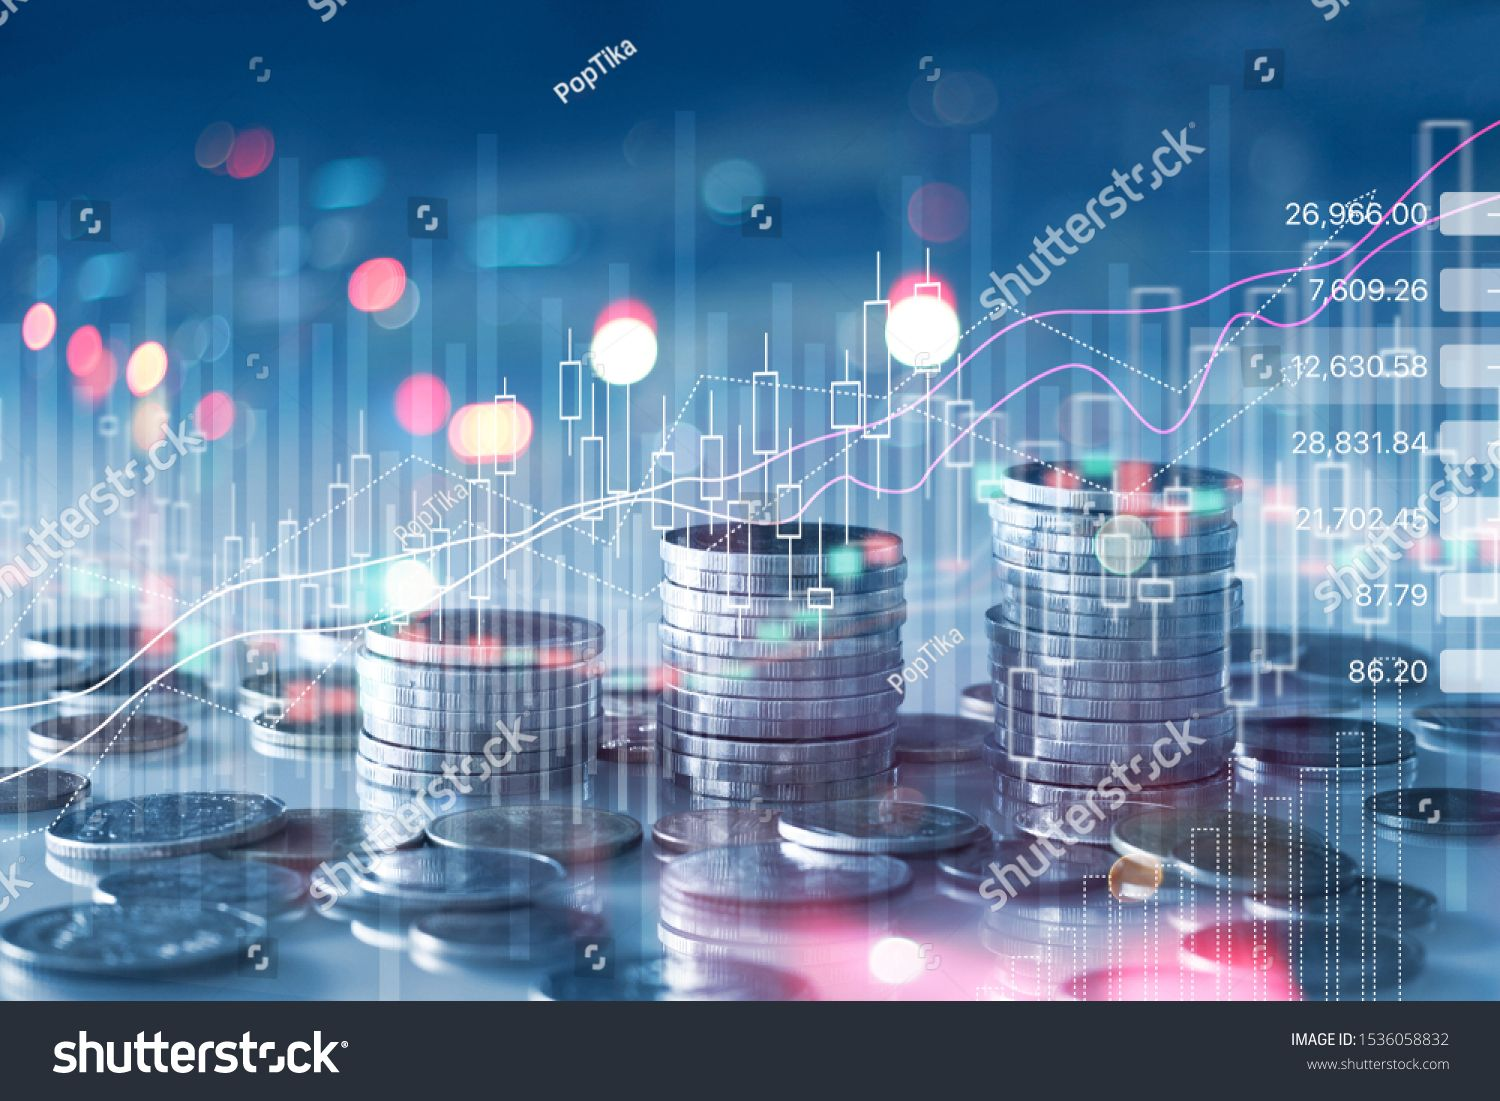 Financial Stock Market Graph And Rows Of Coins Growth Abstract And Symbol For Finance Concept Business In In 2020 Stock Market Graph Stock Market Business Investment